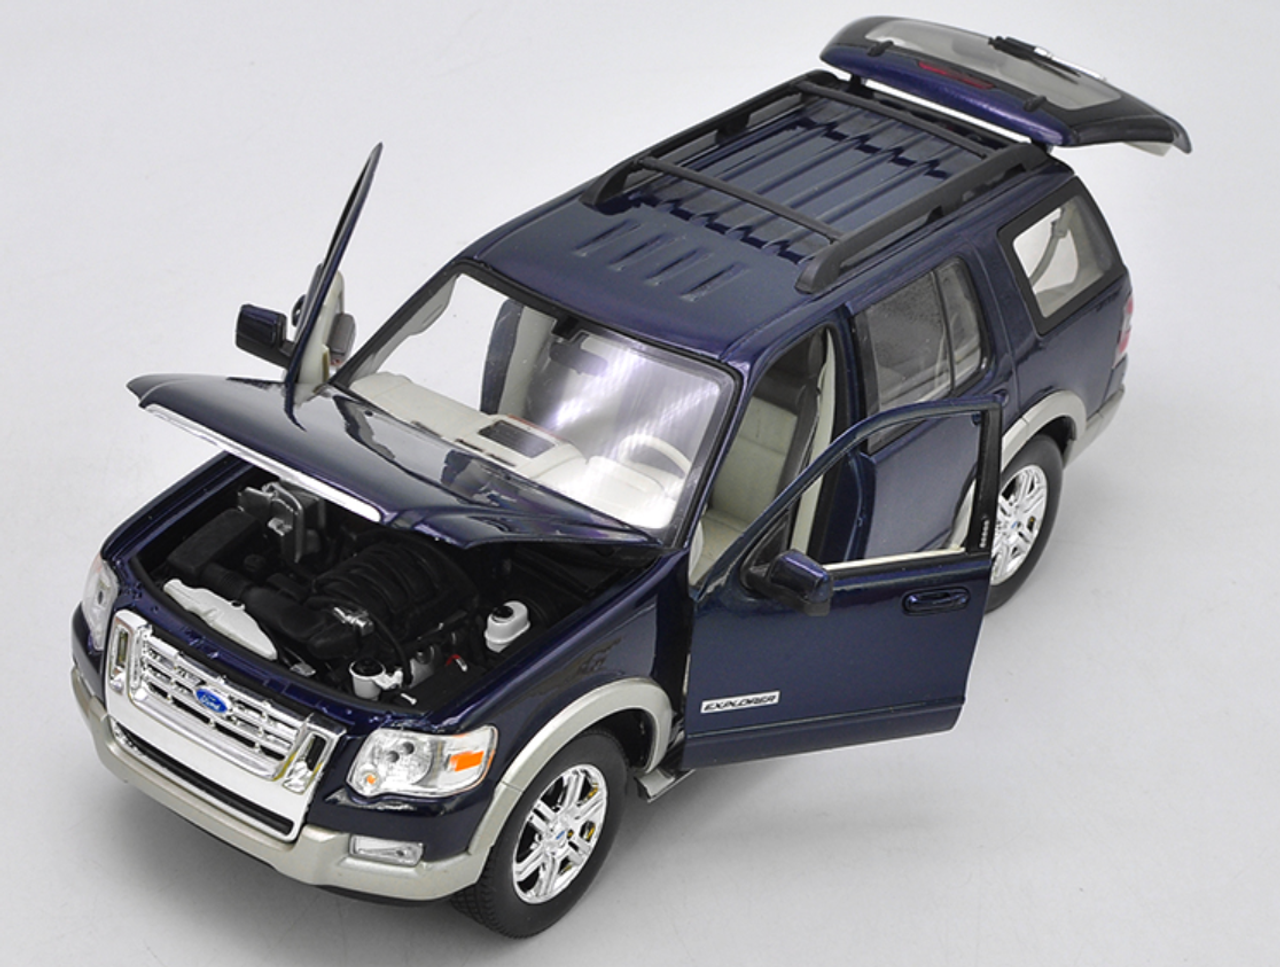 1/18 Welly 2006 Ford Explorer Diecast Car Model